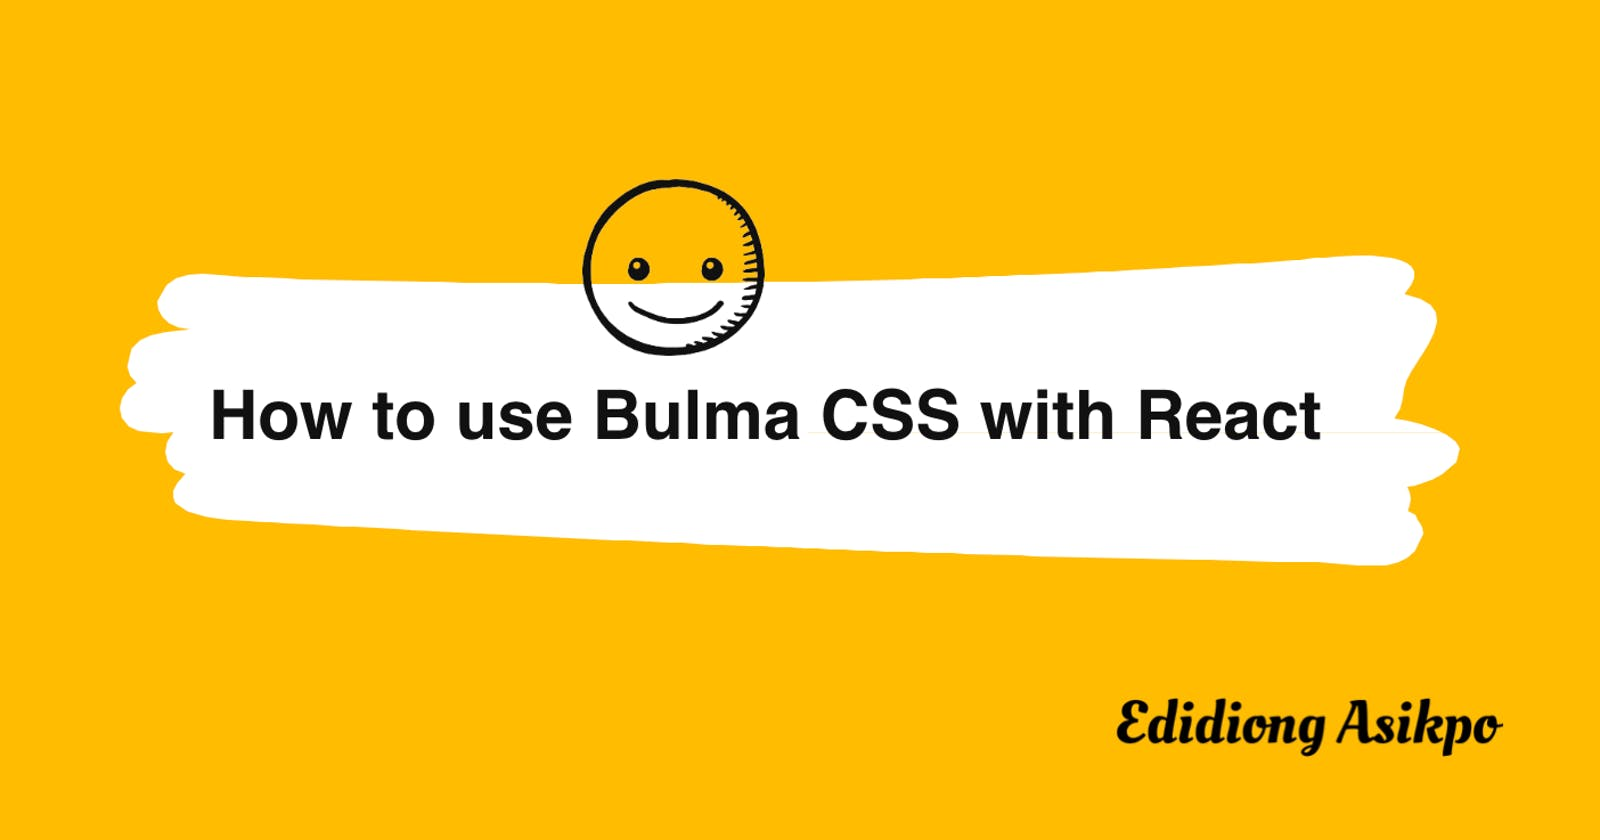 How to use Bulma CSS with React